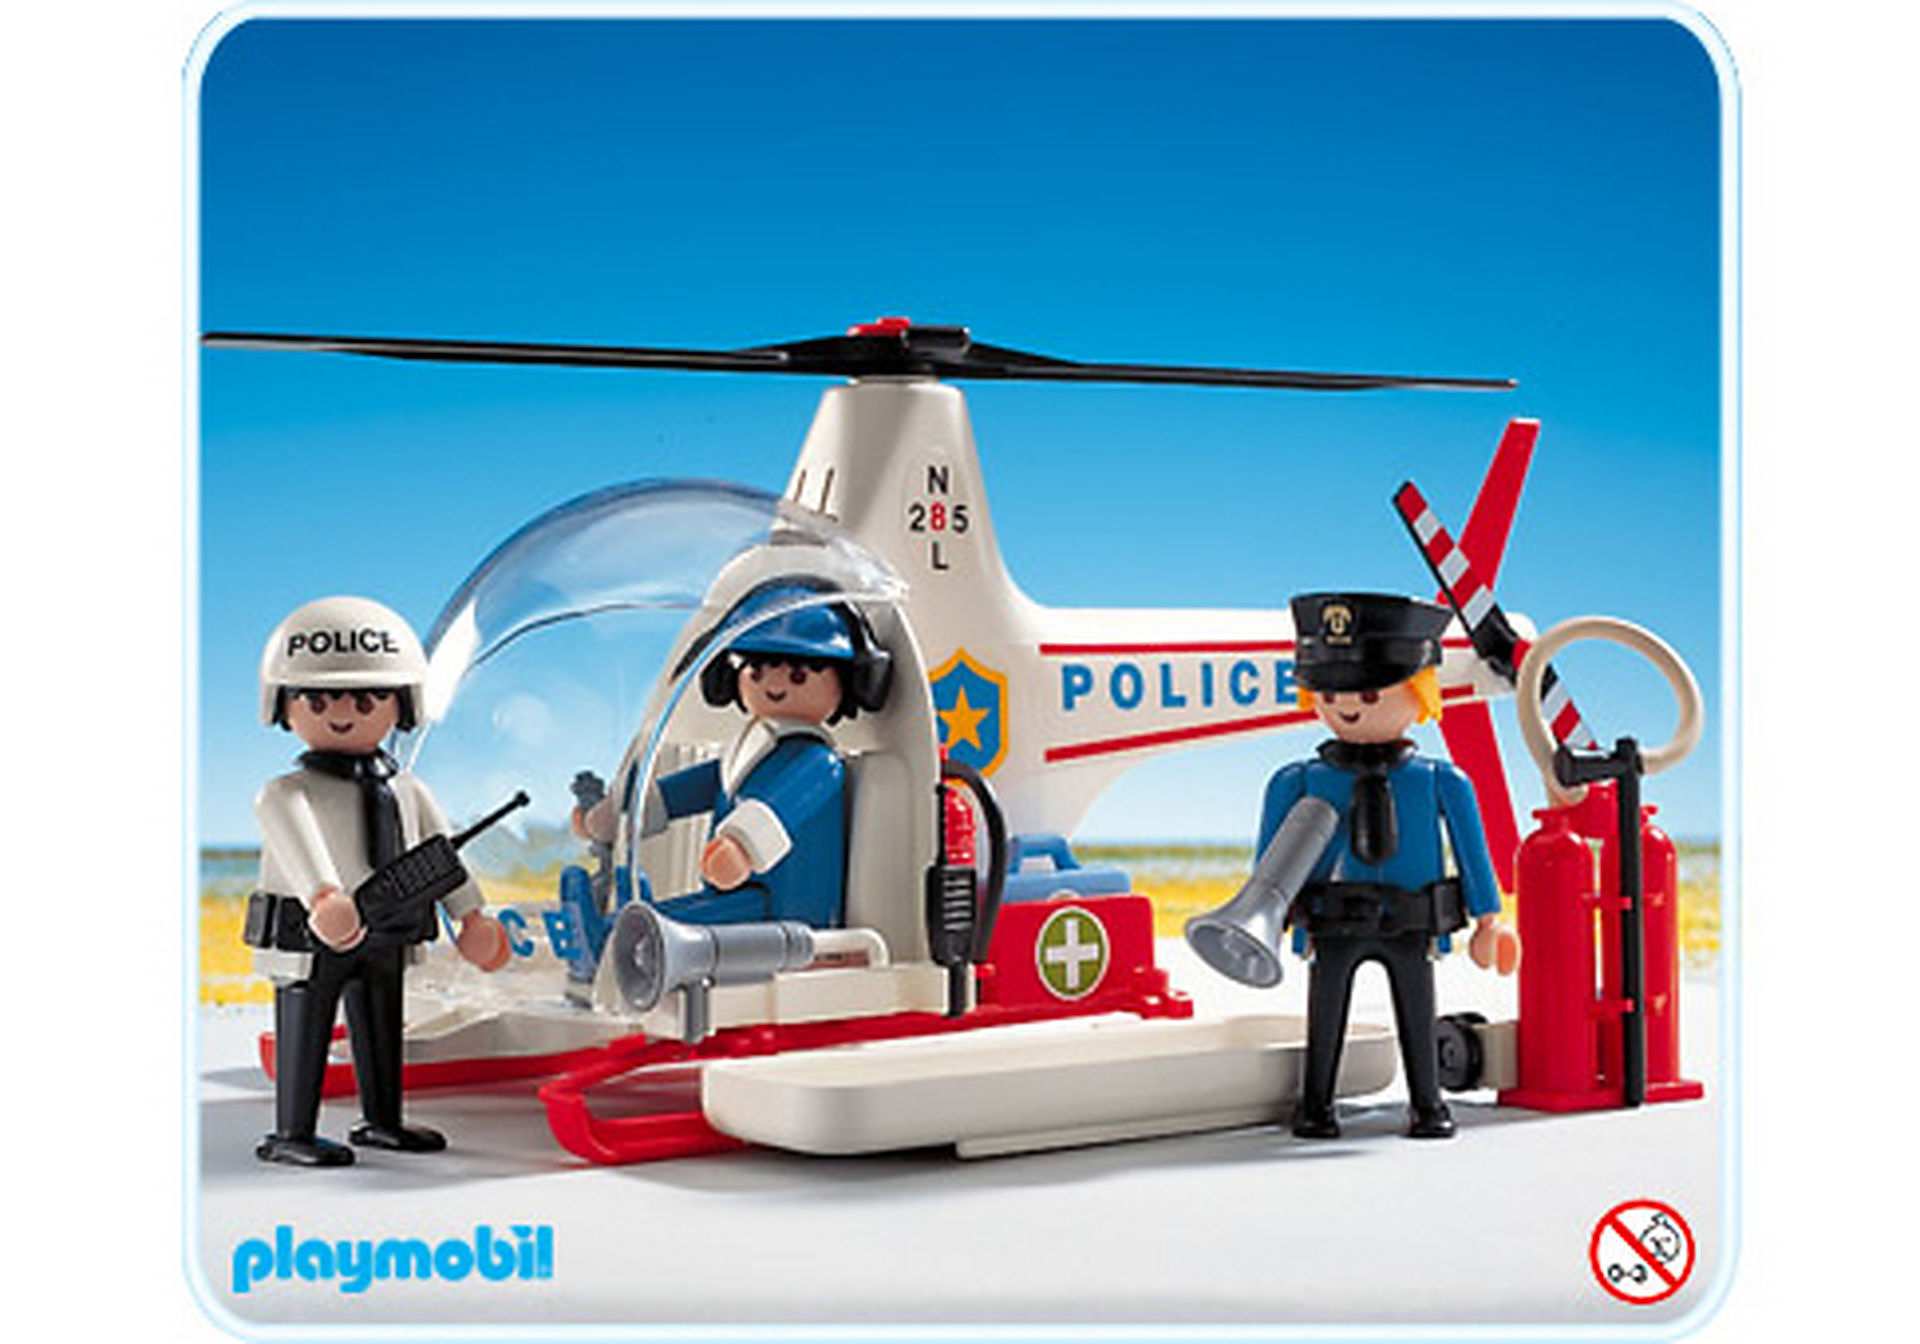 http://media.playmobil.com/i/playmobil/3144-A_product_detail/Polizei Helikopter